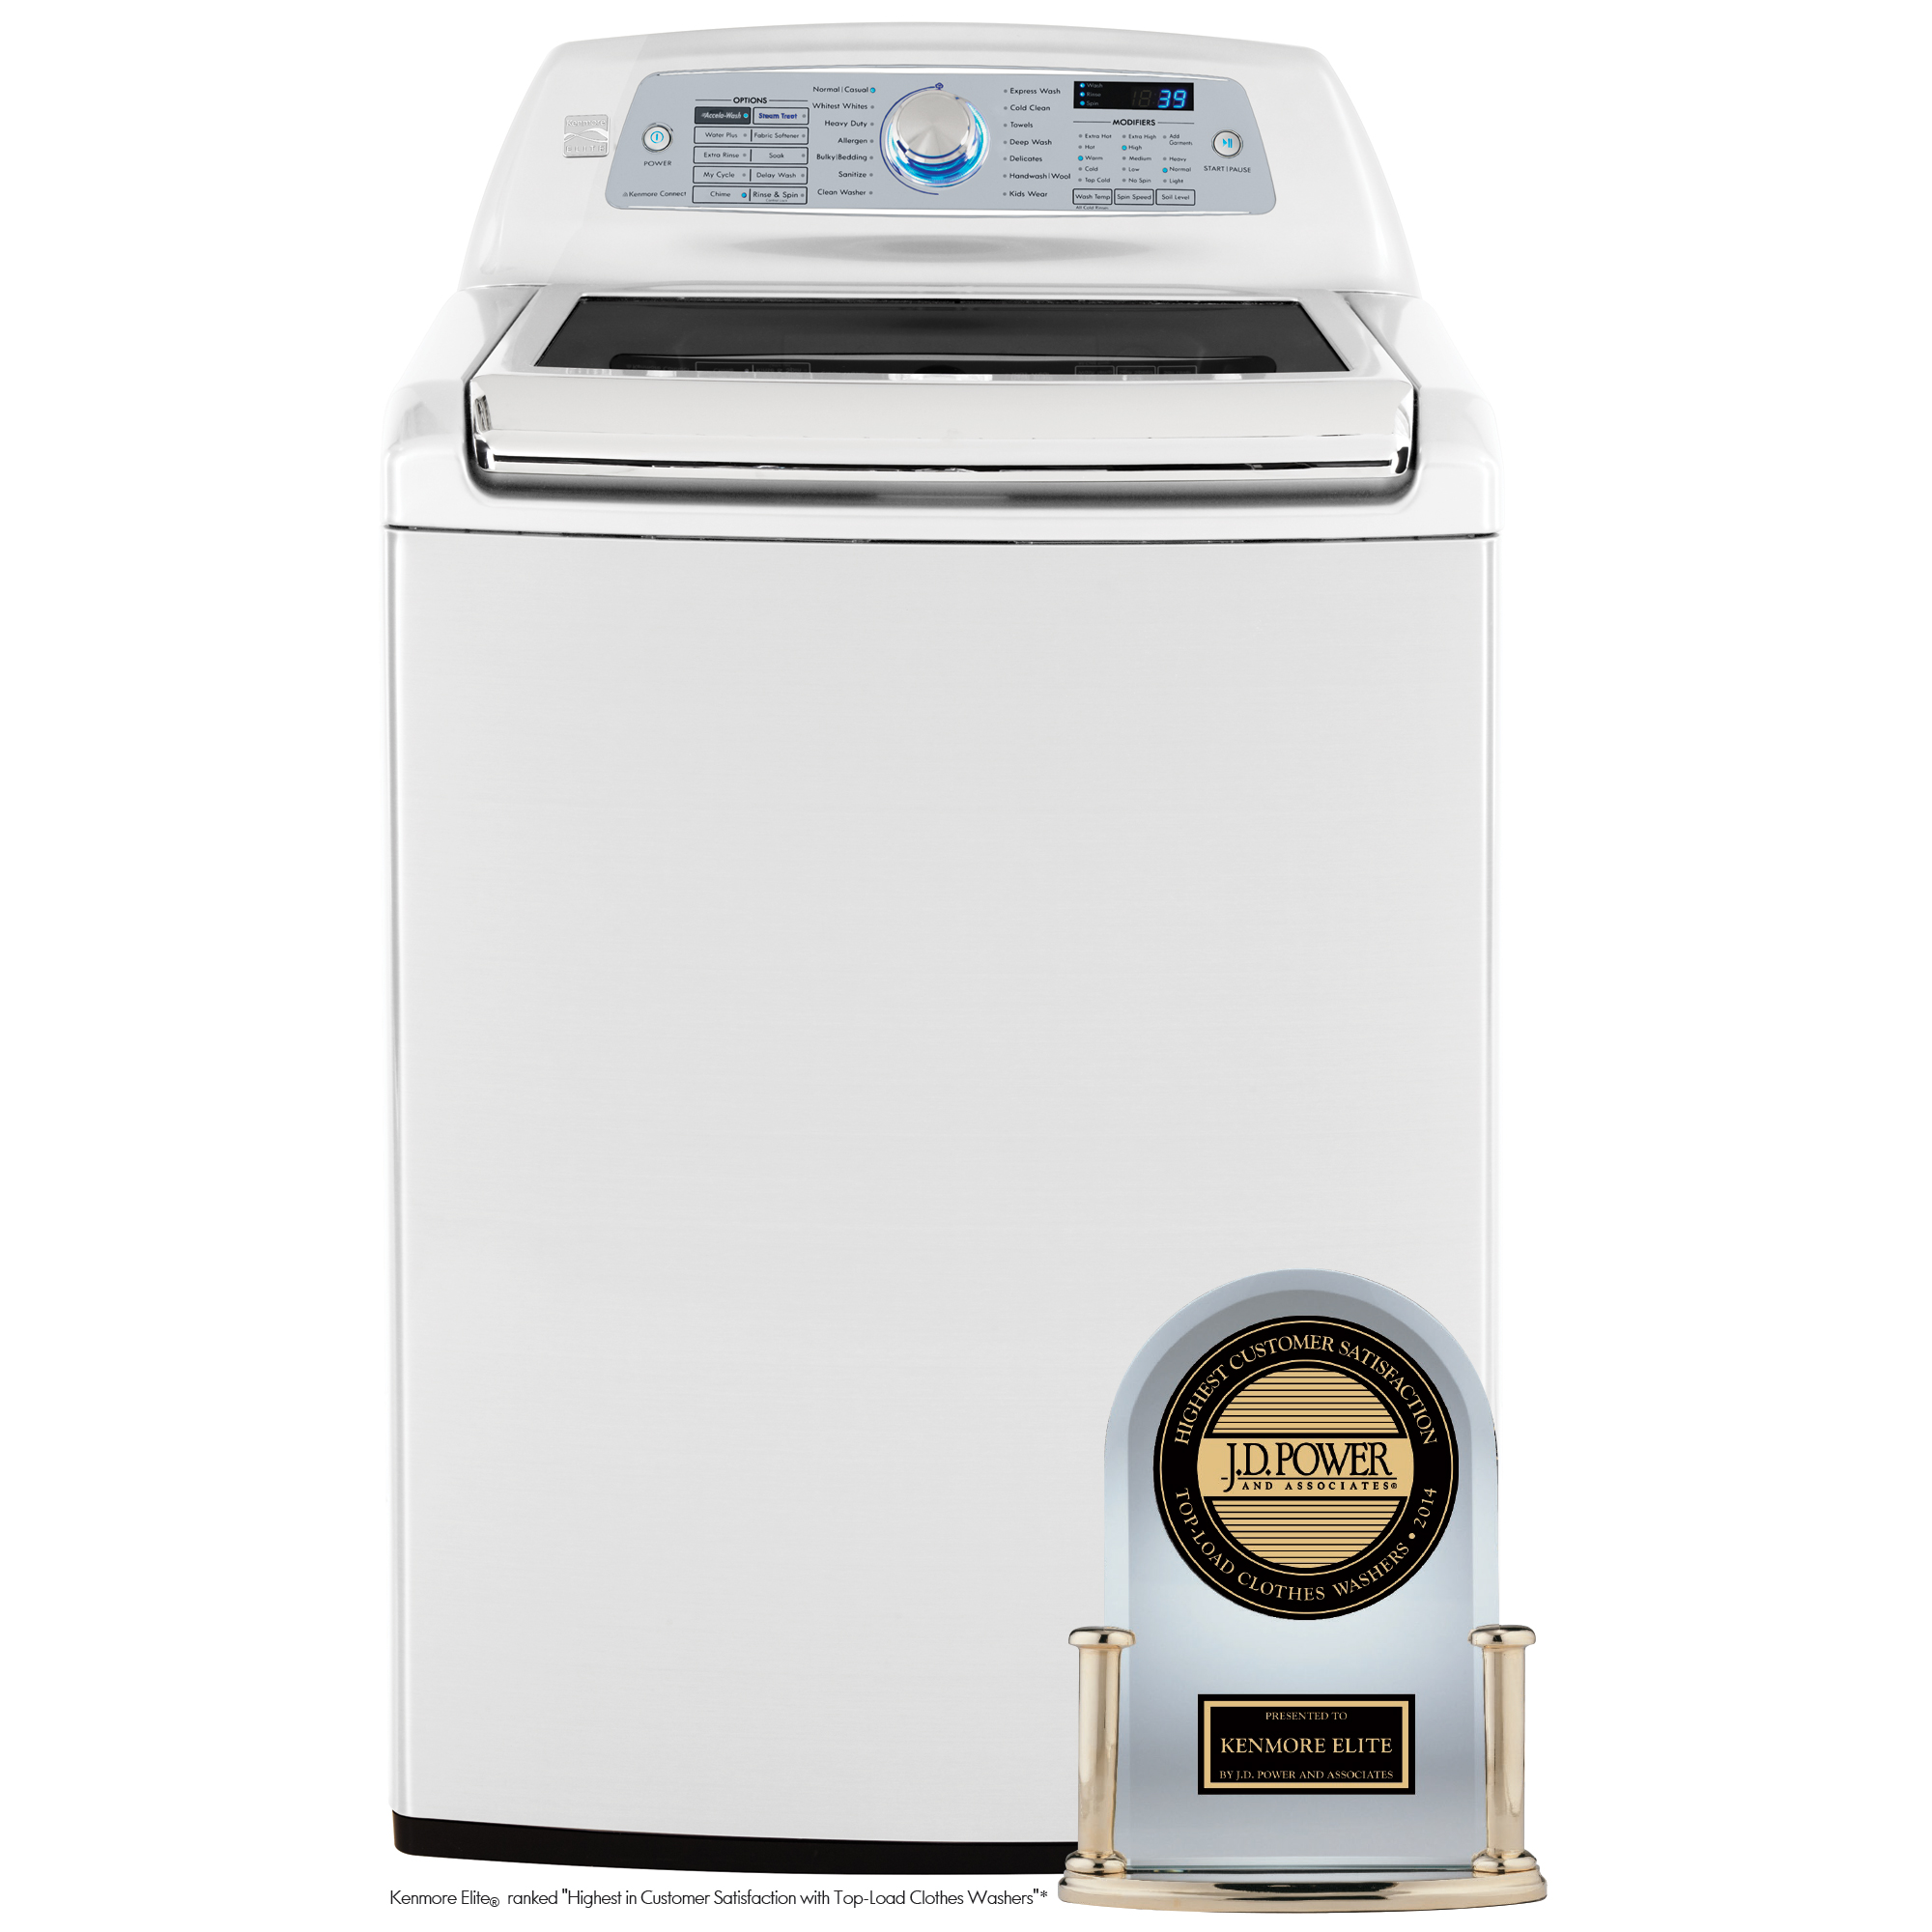 Kenmore Elite 5.2 cu. ft. Top-Load Washer w/ Steam & Accela-Wash - White